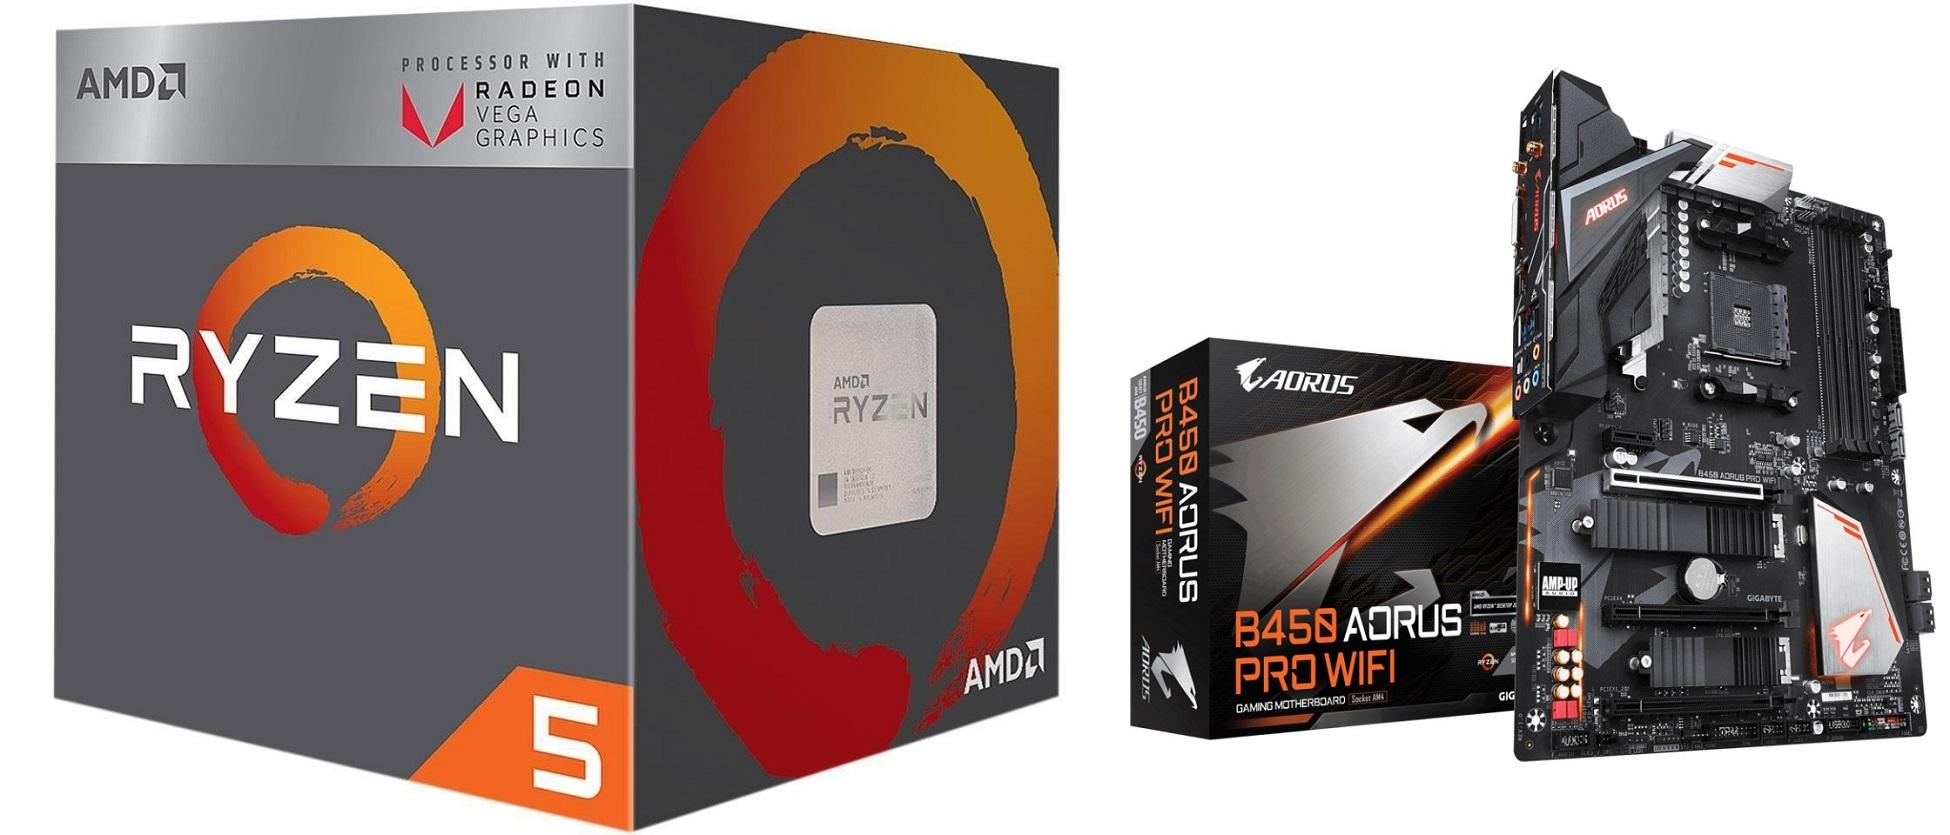 Amd Ryzen 5 2400g Processor With Radeon Rx Vega 11 Graphics Computer Components Parts Computers Tablets Networking Cpus Processors